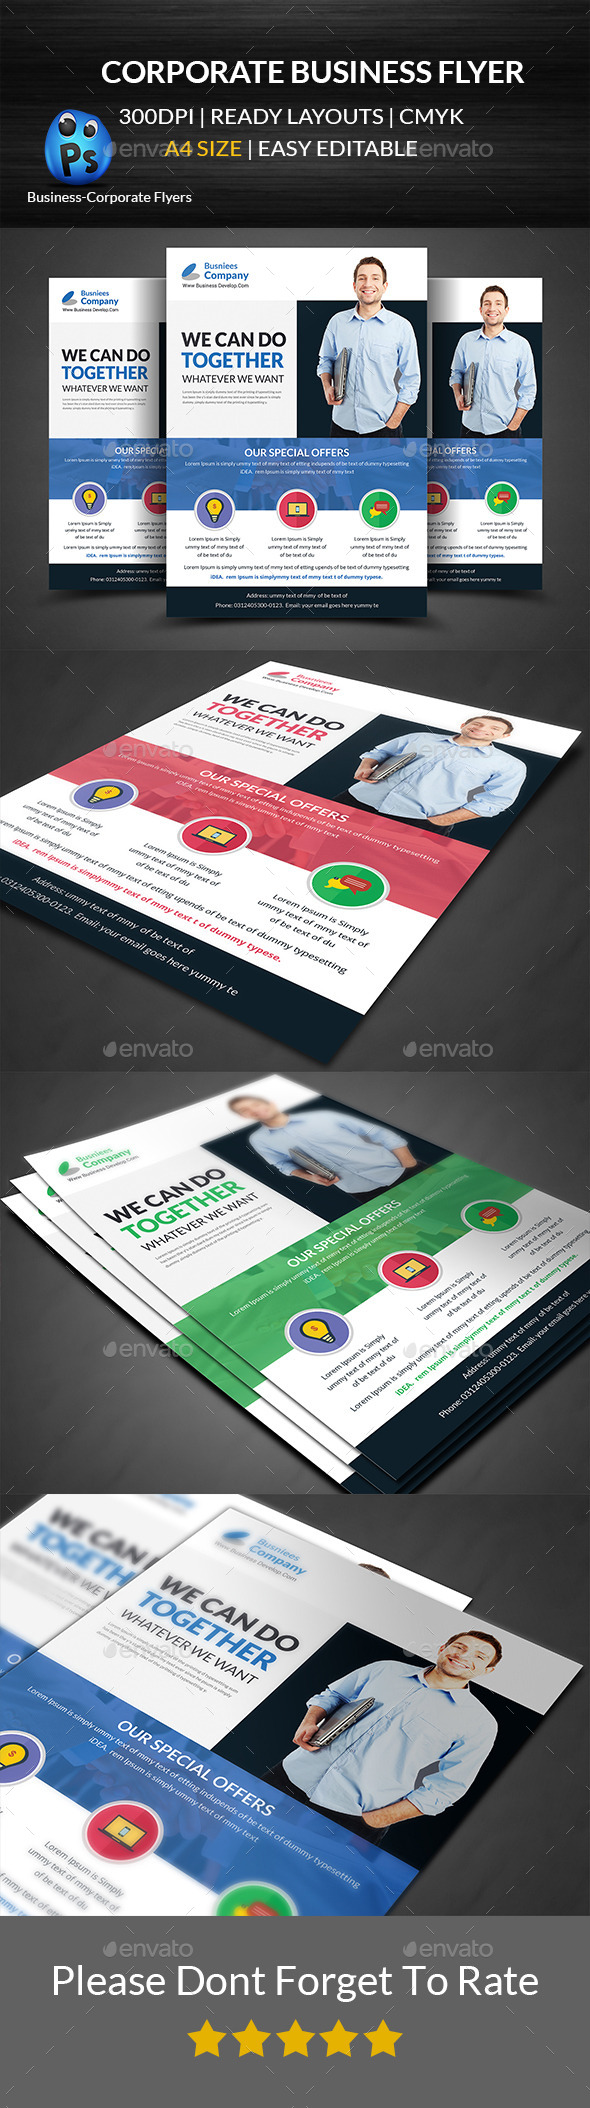 GraphicRiver Corporate Business Flyer Template 11916530